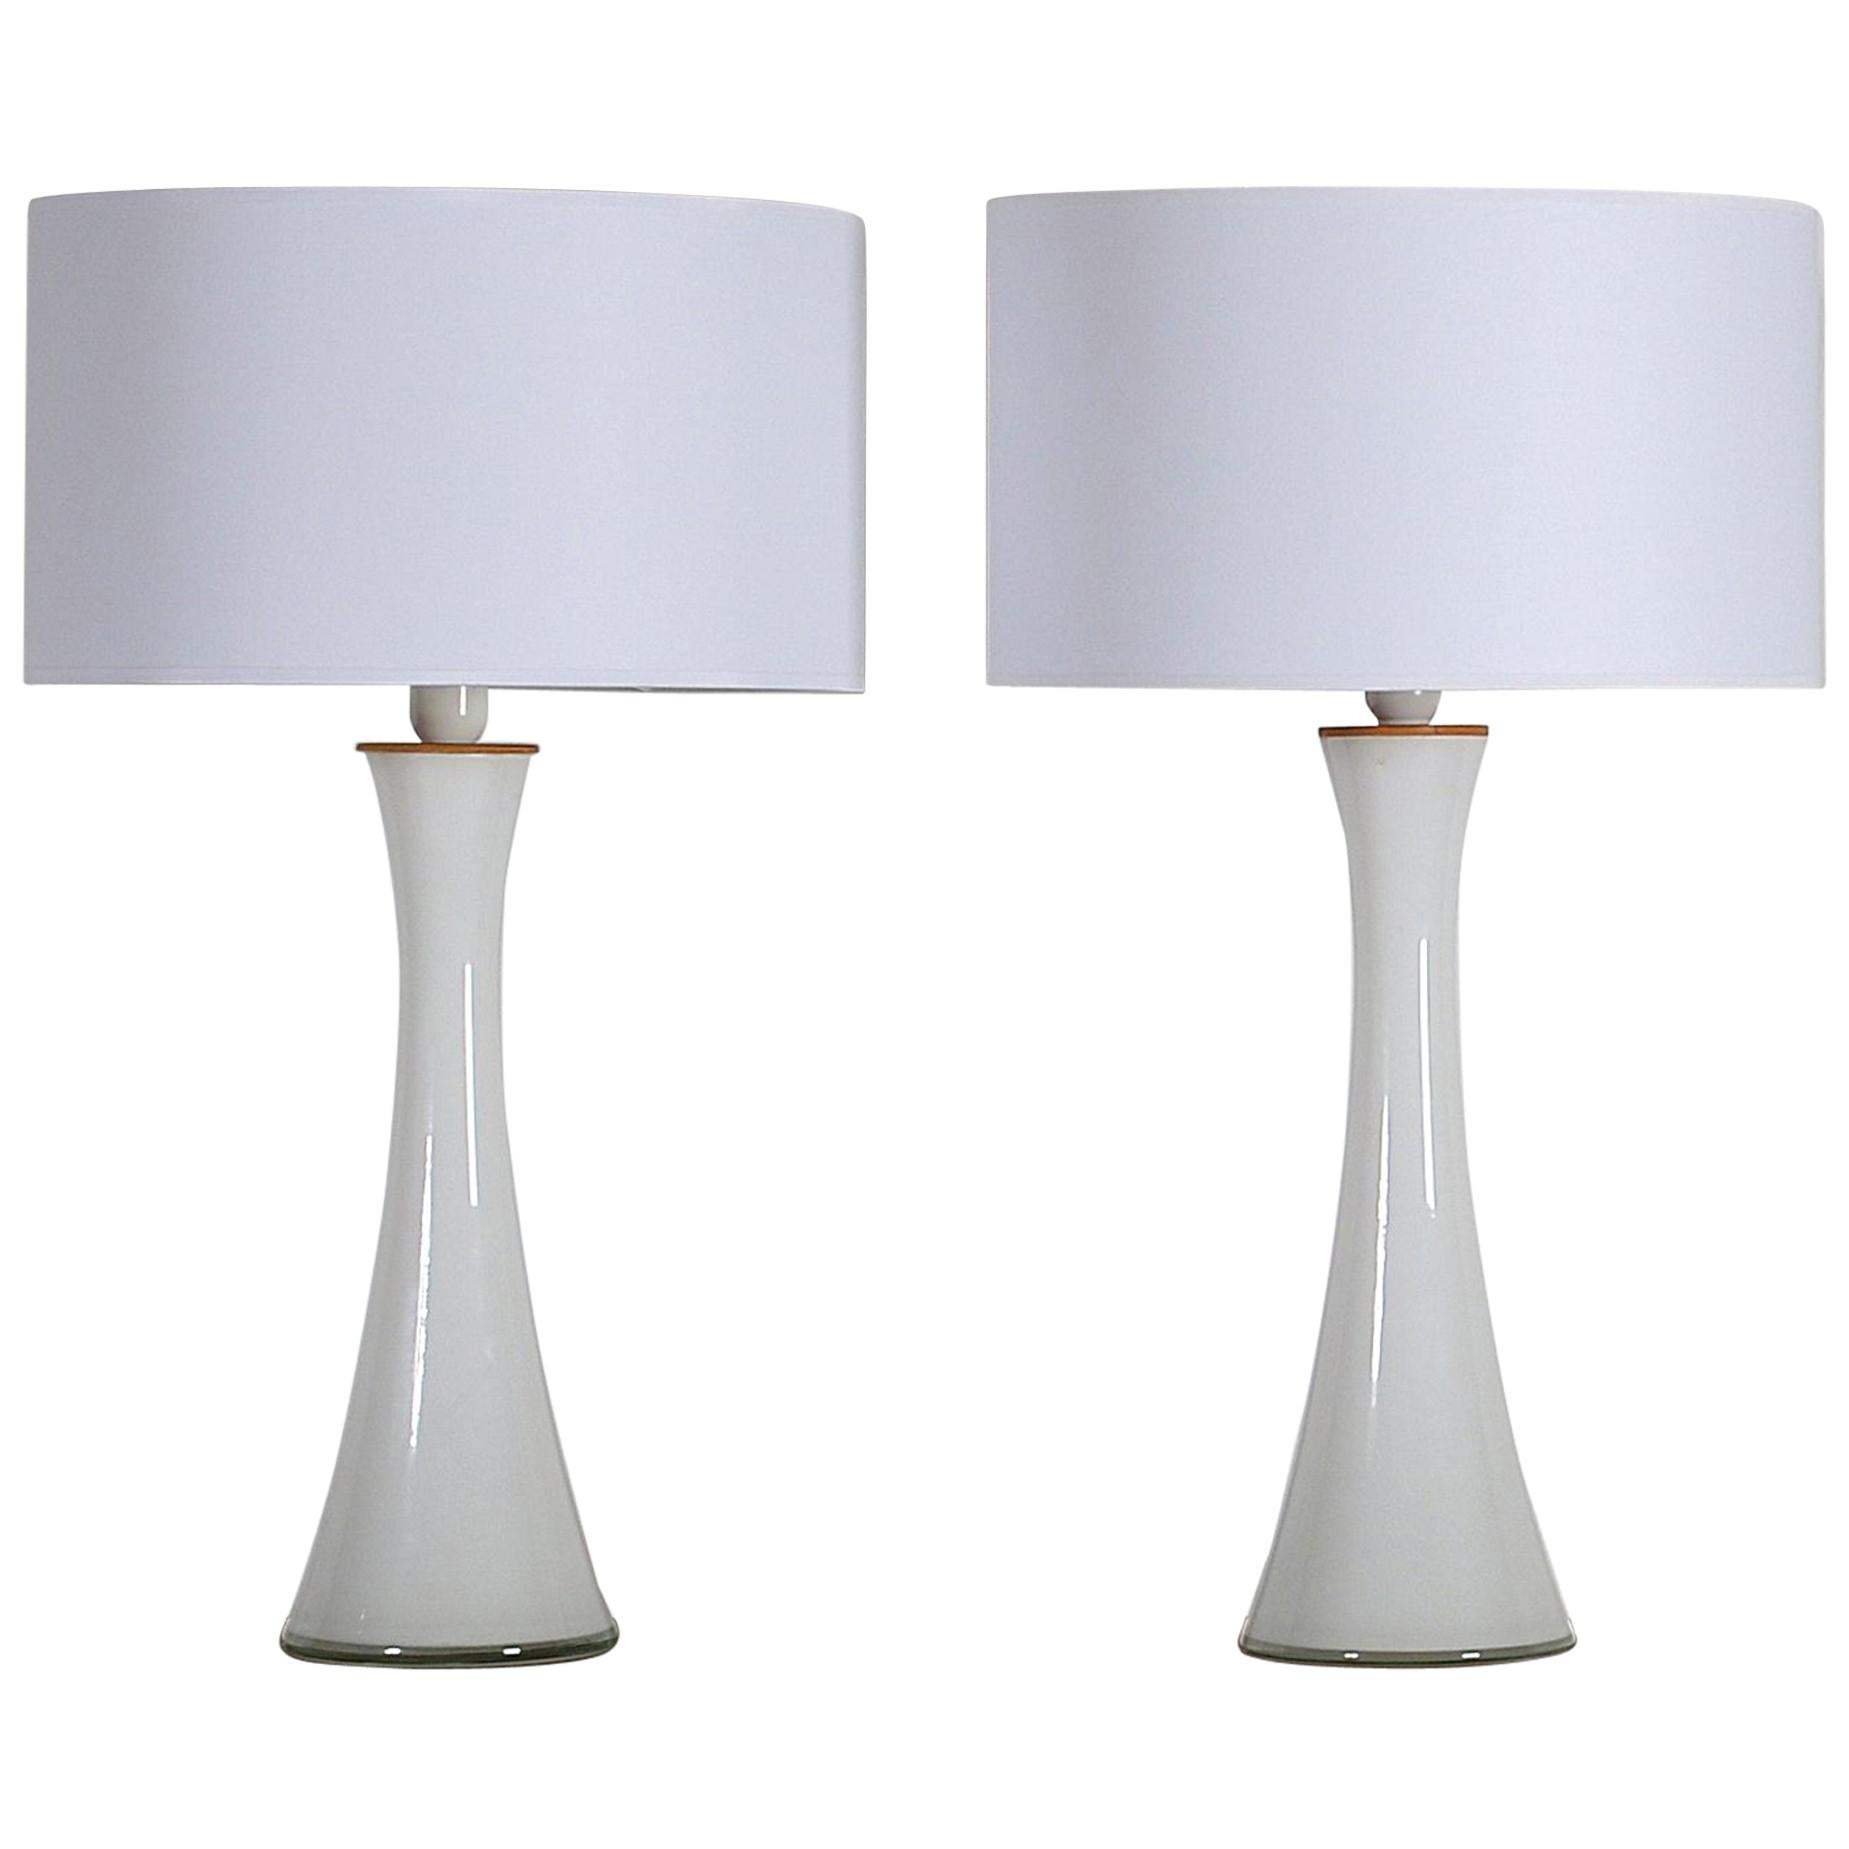 Chic Bergboms Pair of Opaline Glass with Teak Table Lamps, Sweden, circa 1960